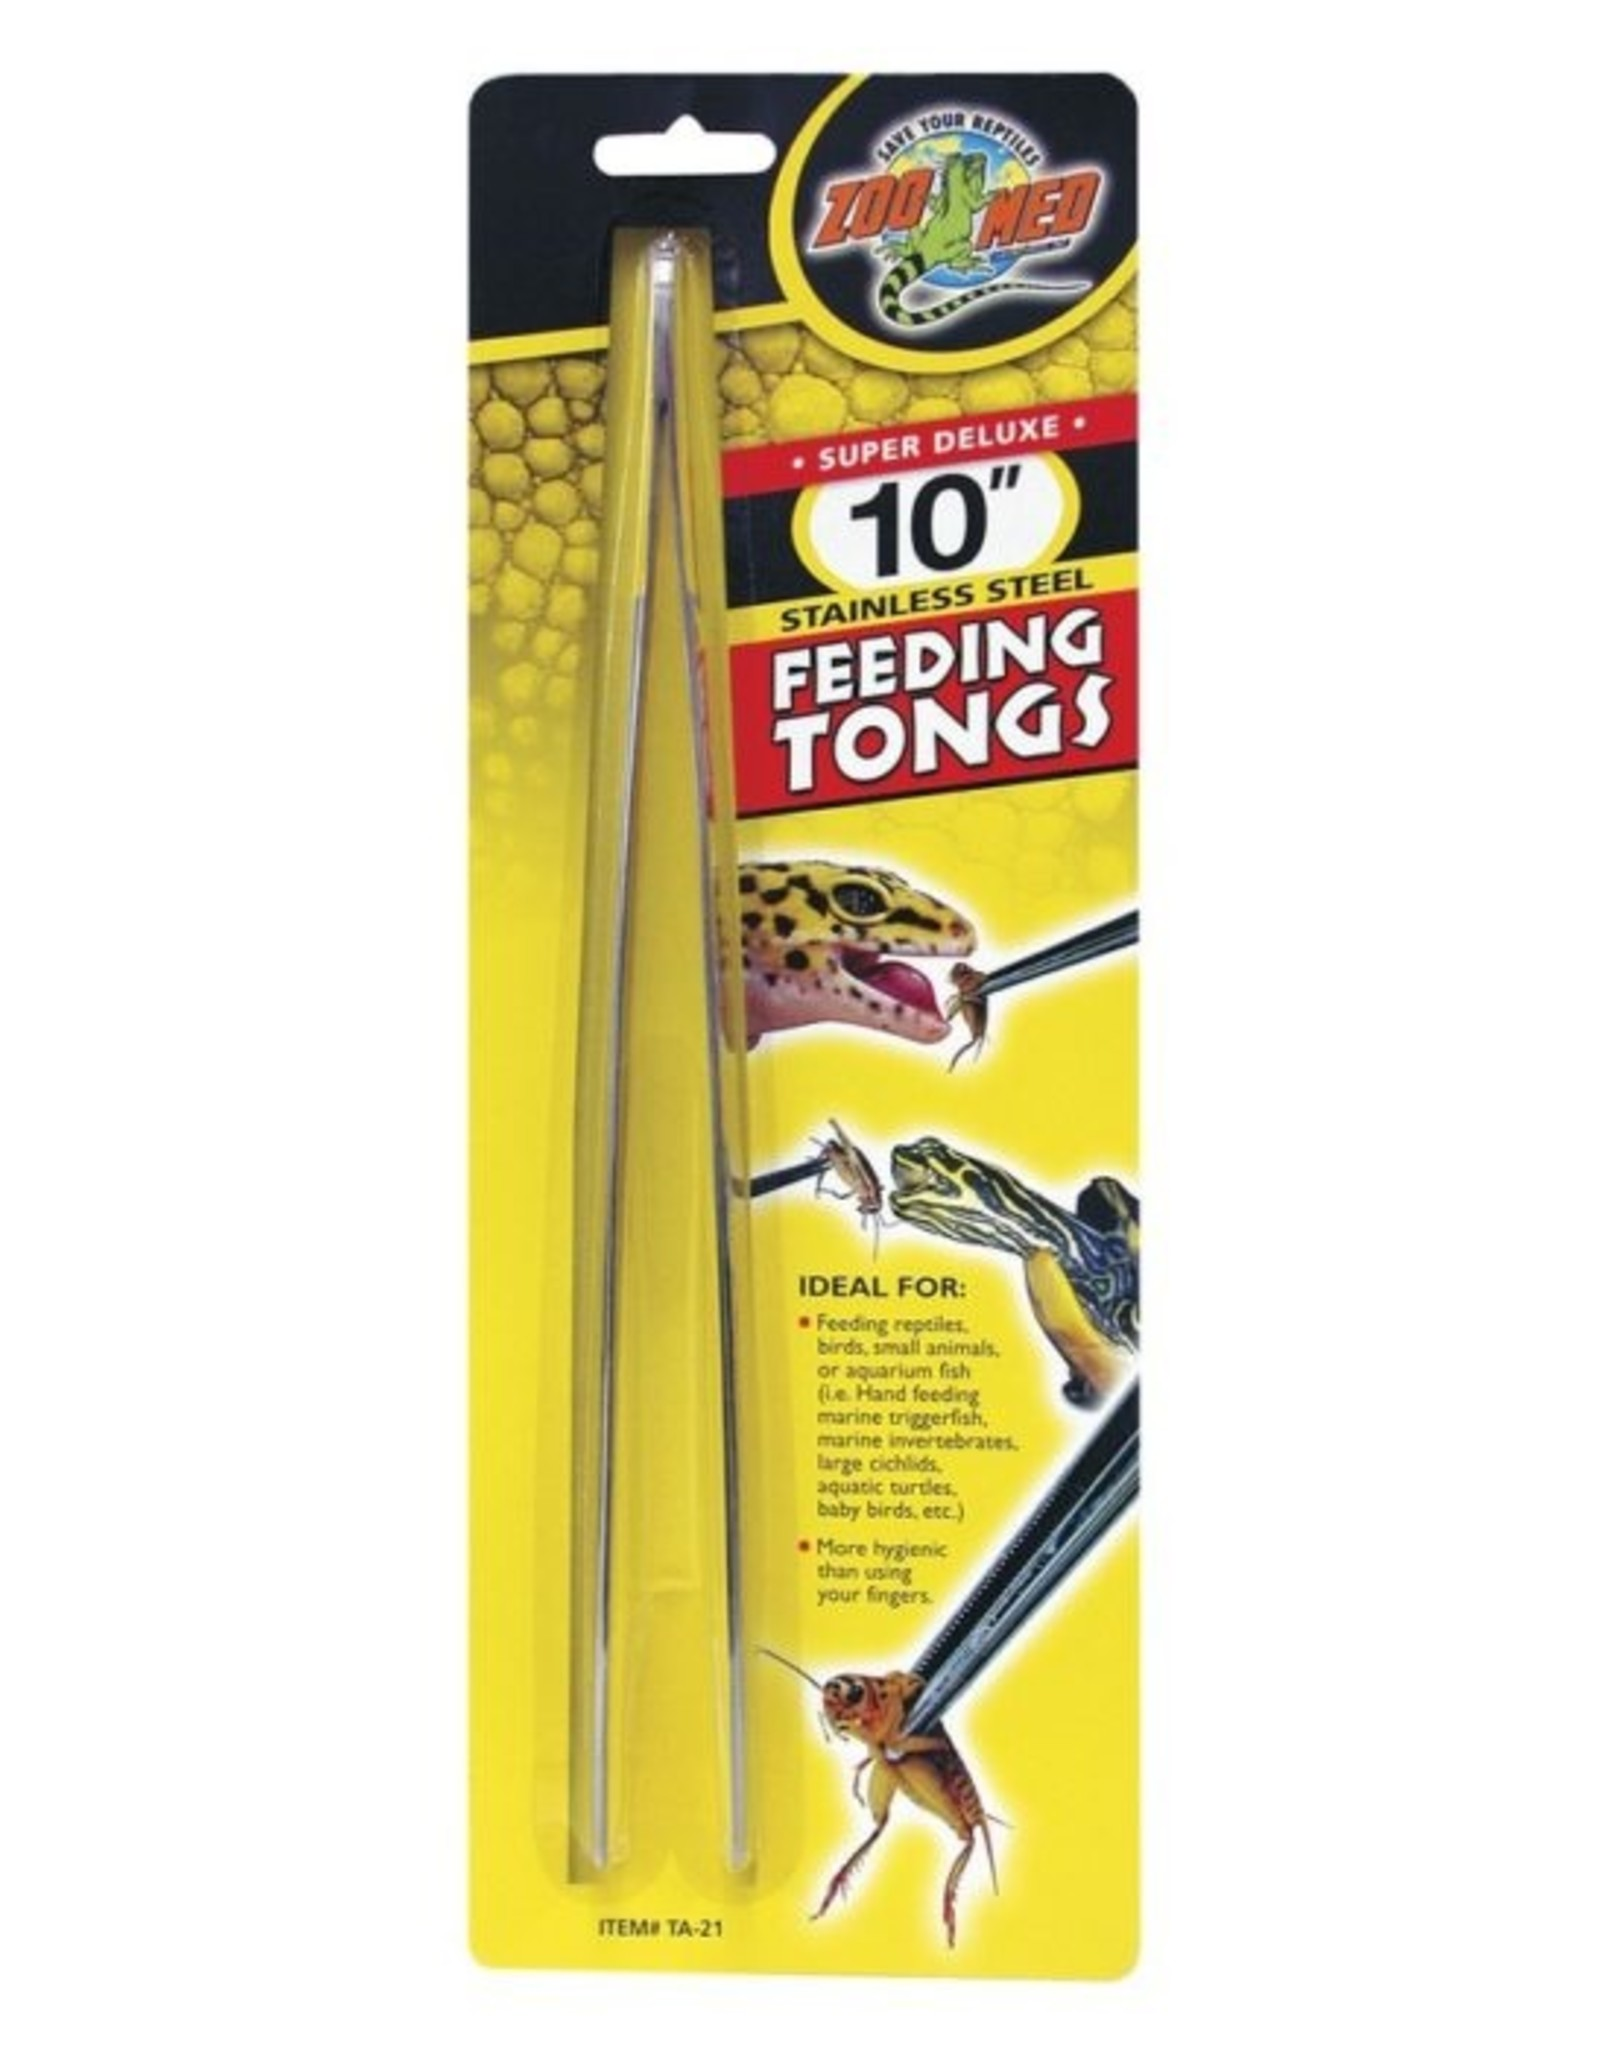 Zoo Med ZOO MED Feeding Tongs 10 inch Stainless